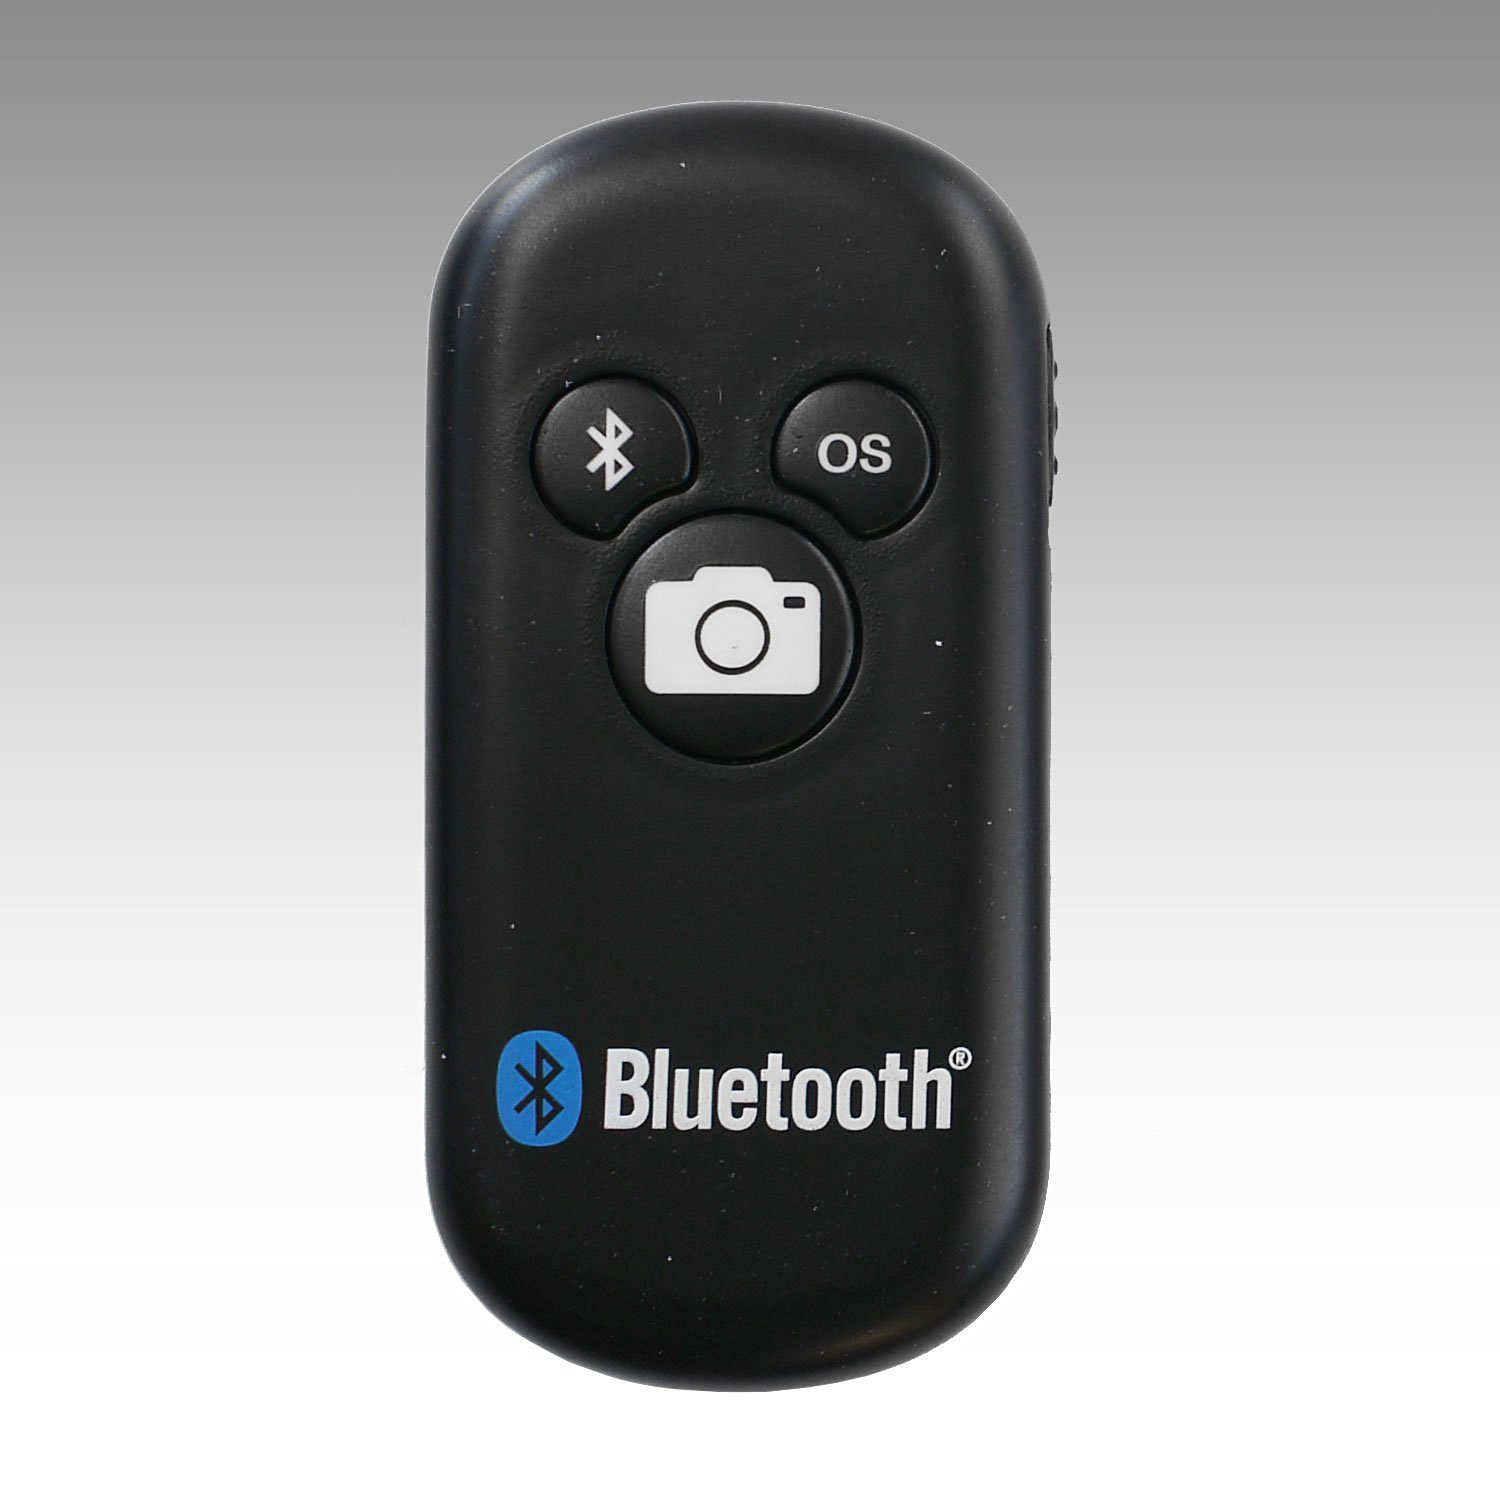 Buy Bluetooth Shutter Camera Phone Remote for iPhone 4S / 5 / 5S